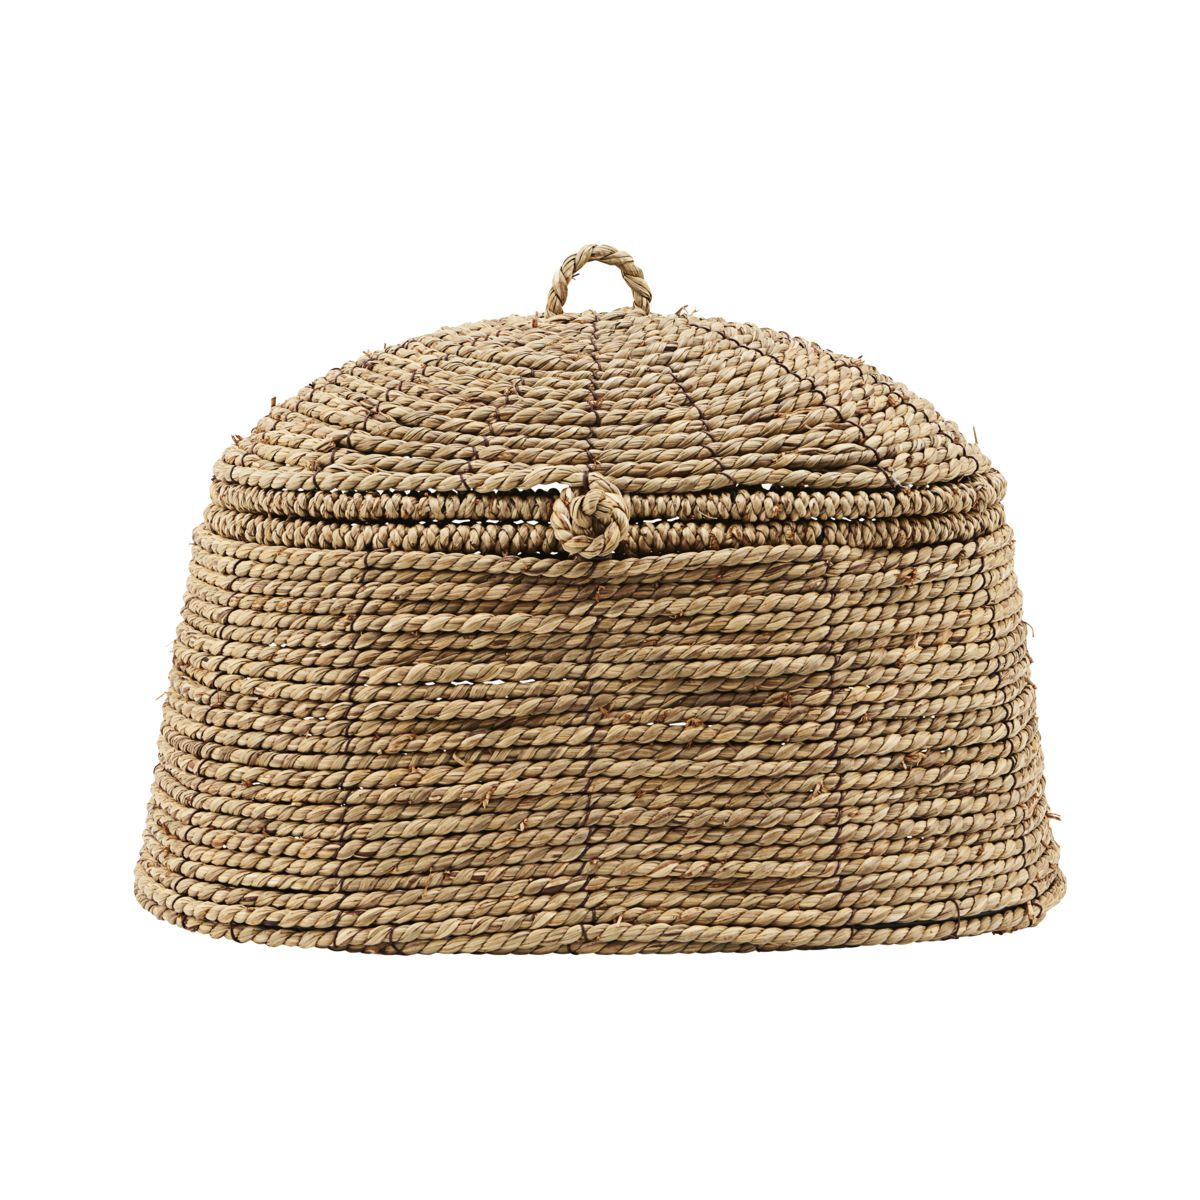 BASKET WITH LID I am Nomad